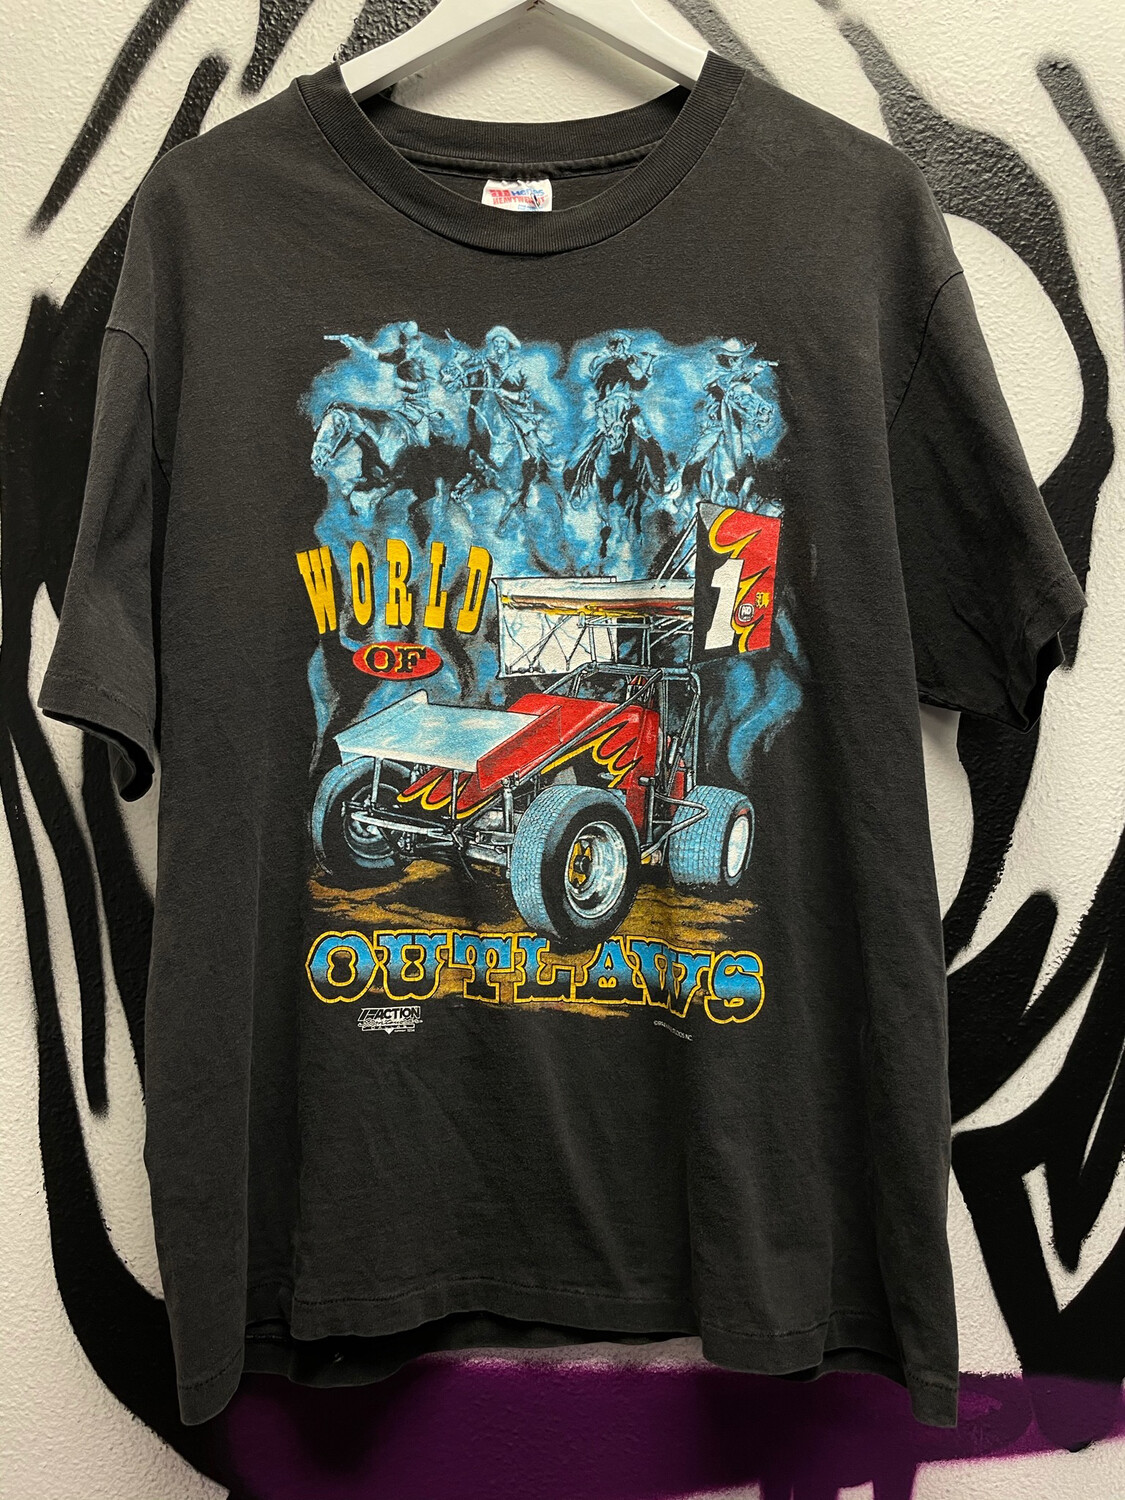 1994 Outlaws Racing Shirt Size Large